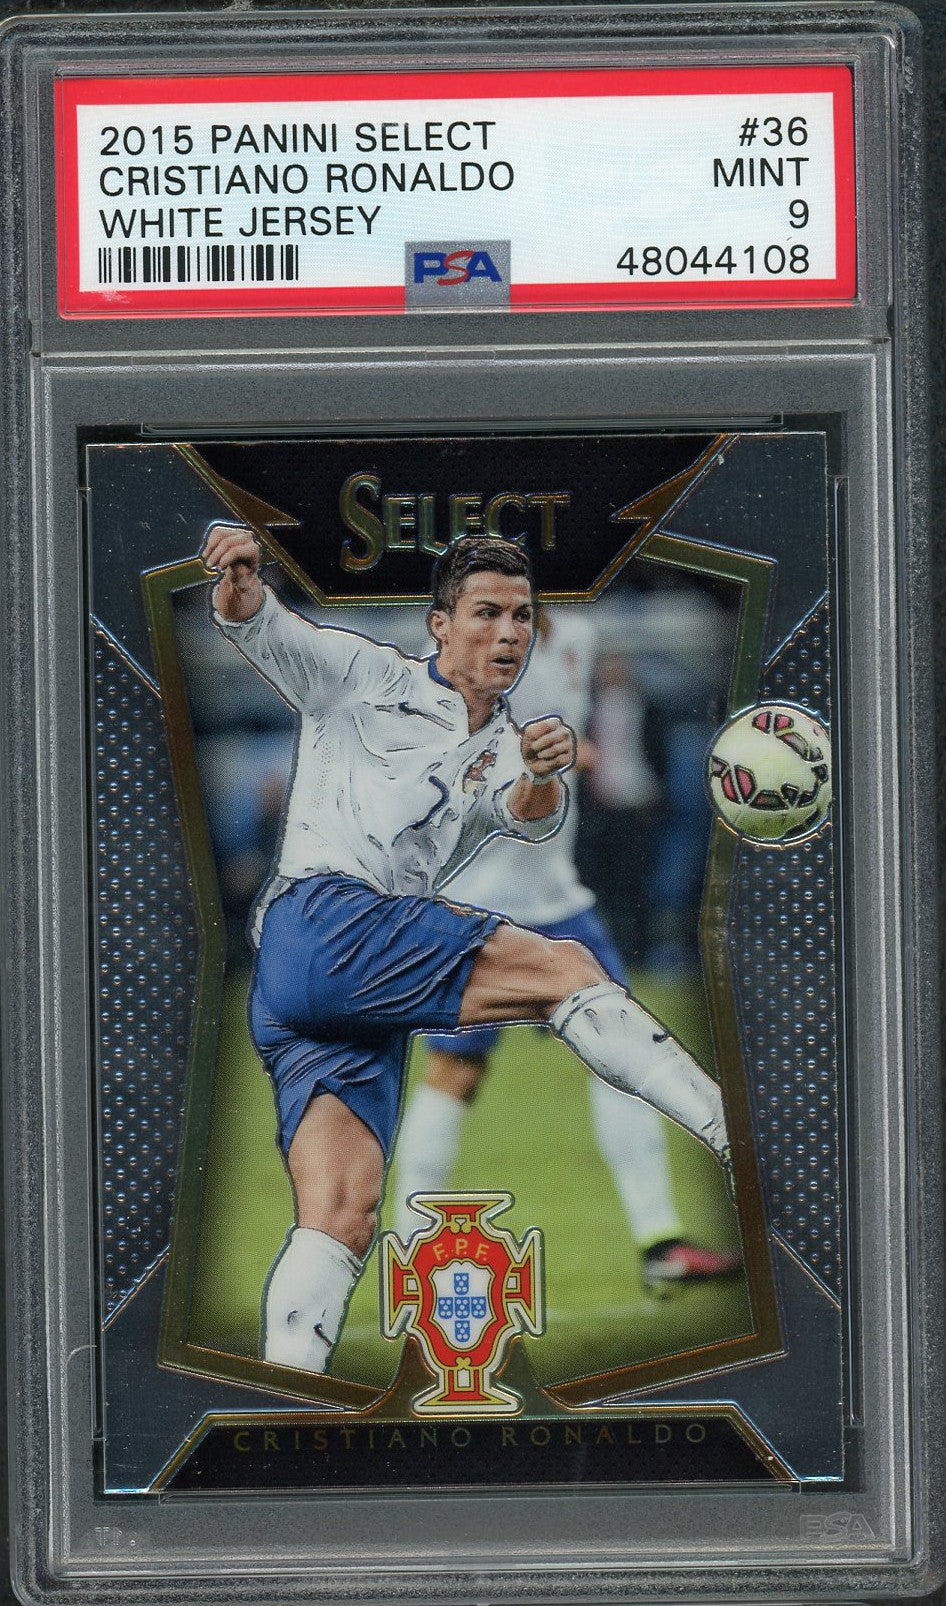 Cristiano Ronaldo Portugal 2015 Panini Select Soccer Card #36 Graded PSA 9 MINT-Powers Sports Memorabilia